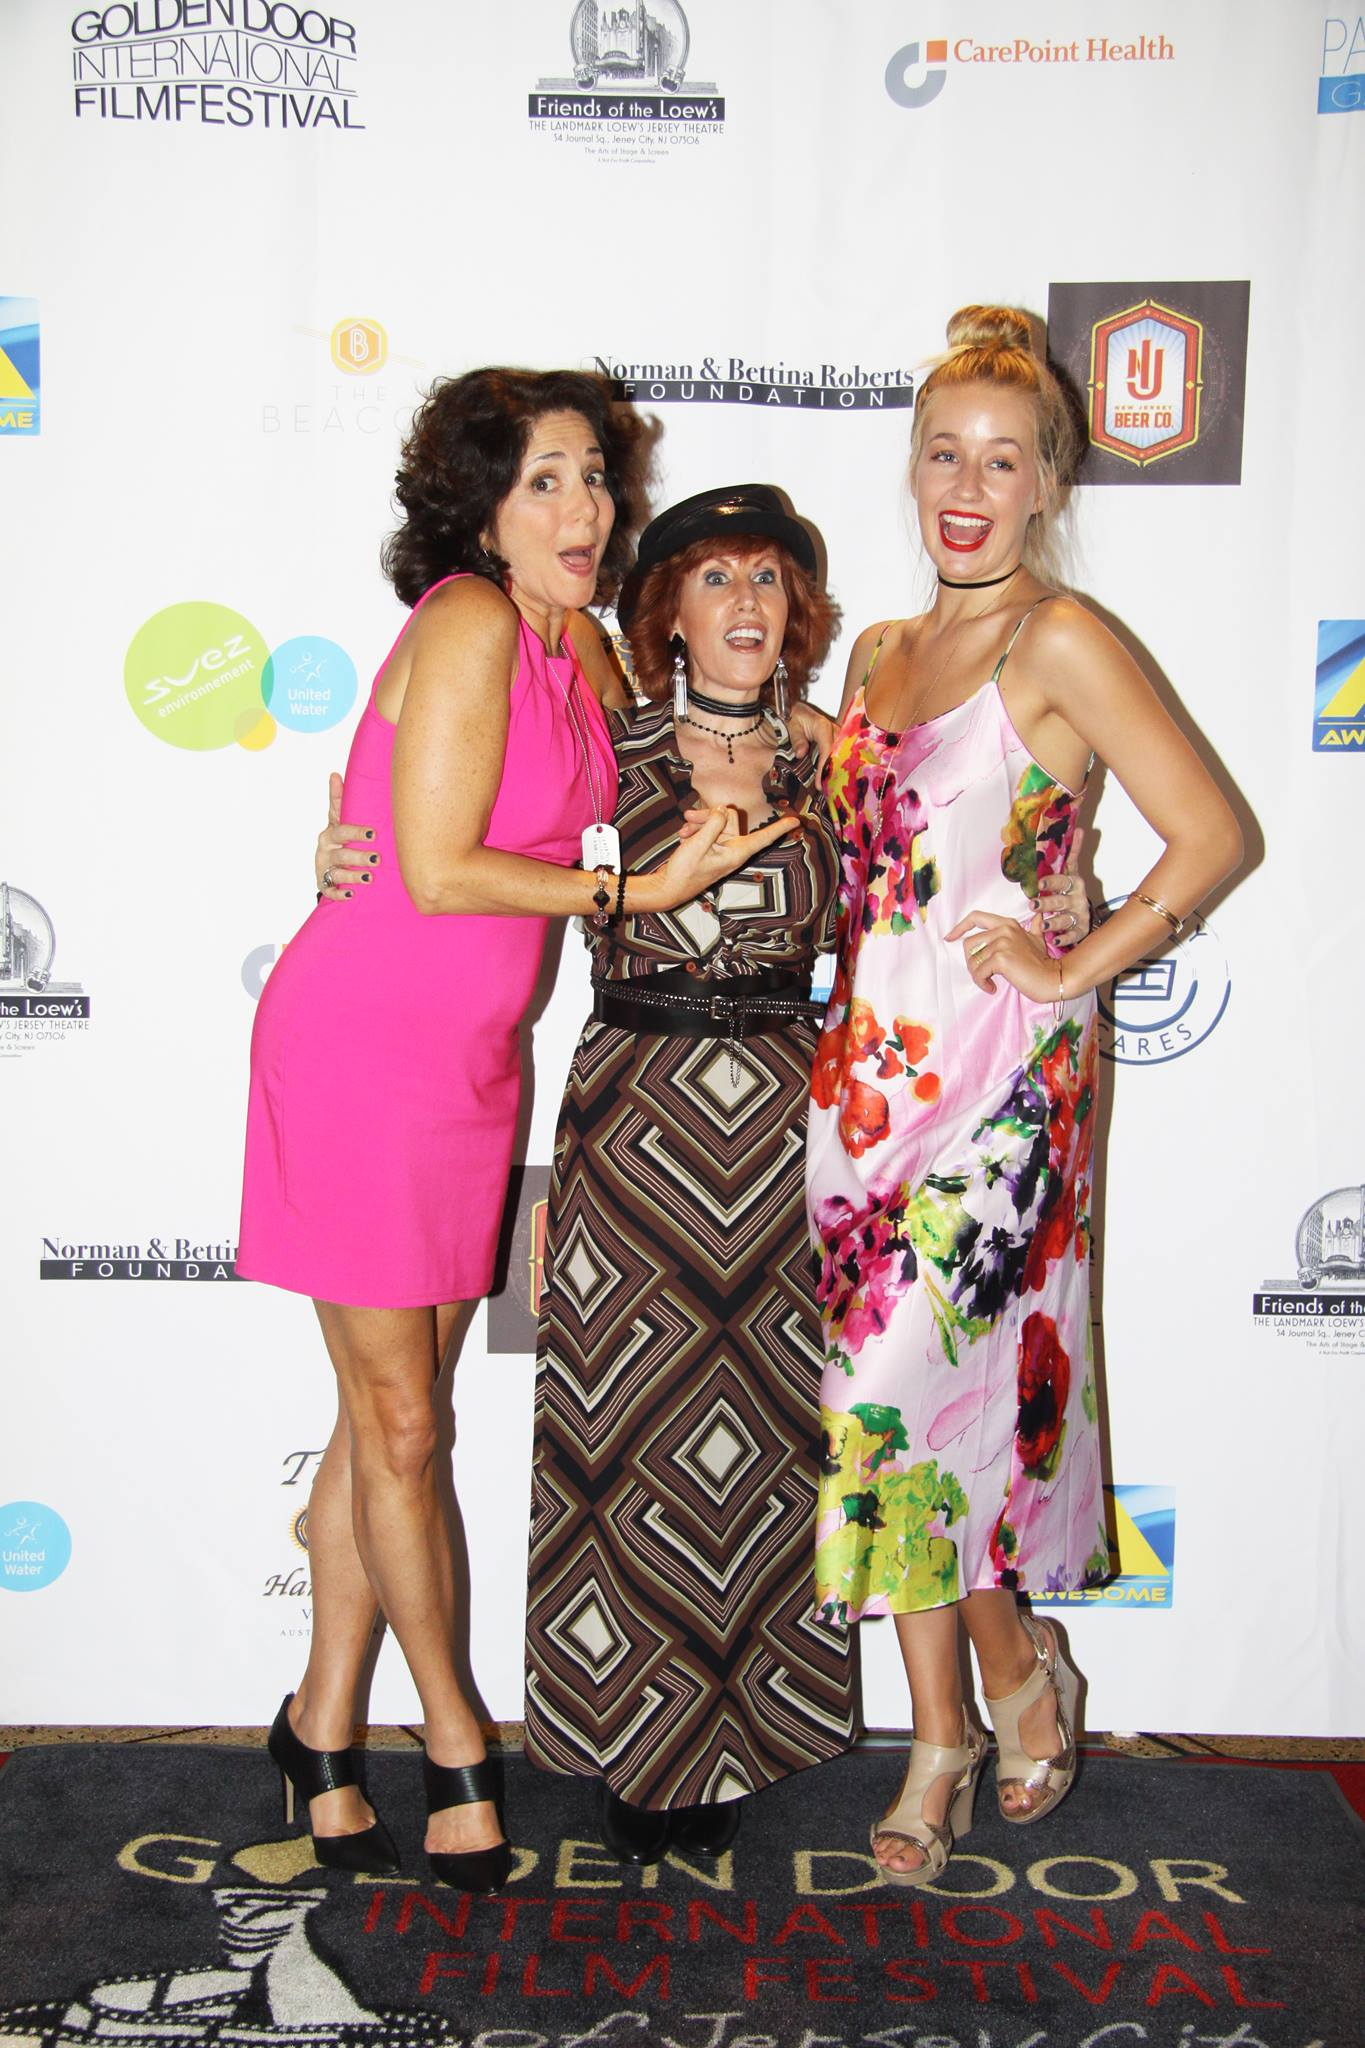 Lead Actress Jennifer Jiles with Actresses Simone Lazer and Lexi Zettle on the Red Carpet at Golden Door International Film Festival